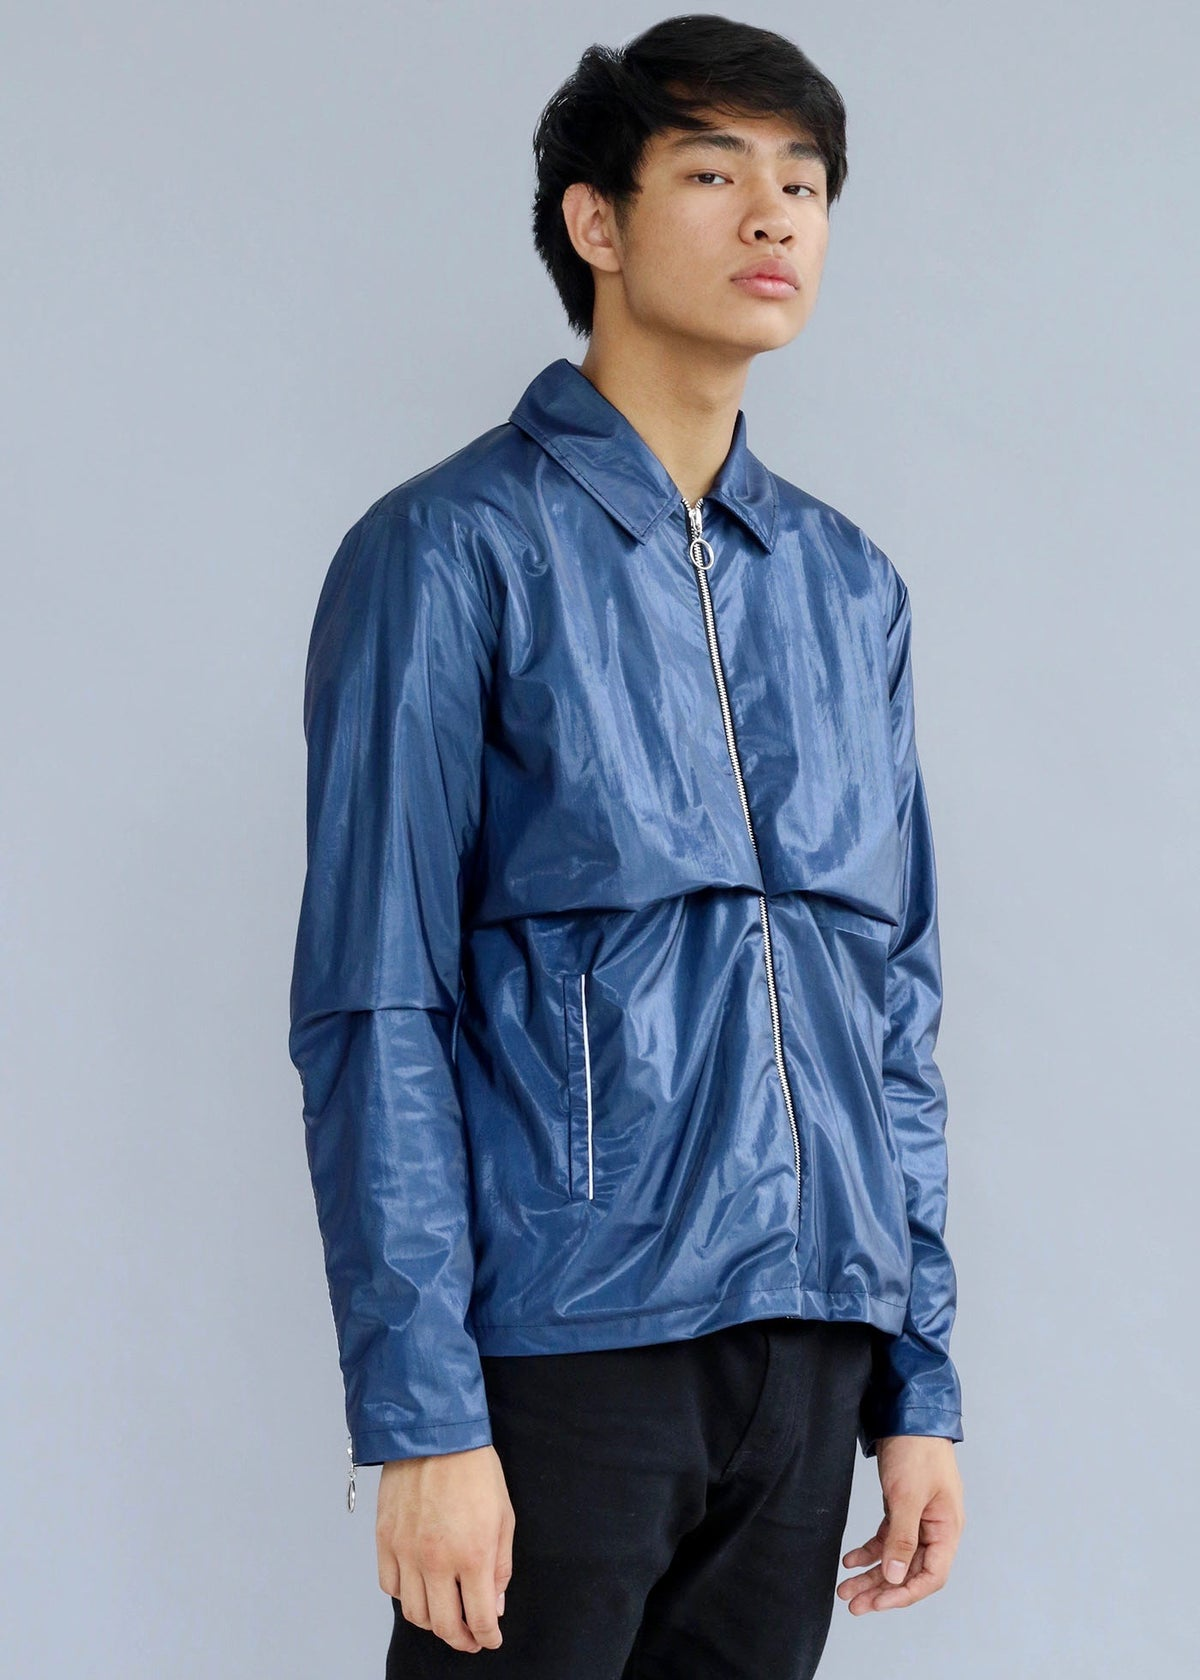 Shiny blue Nylon Shell Jacket featuring pipe trims and front layering from What We Wear by Tinie Tempah.